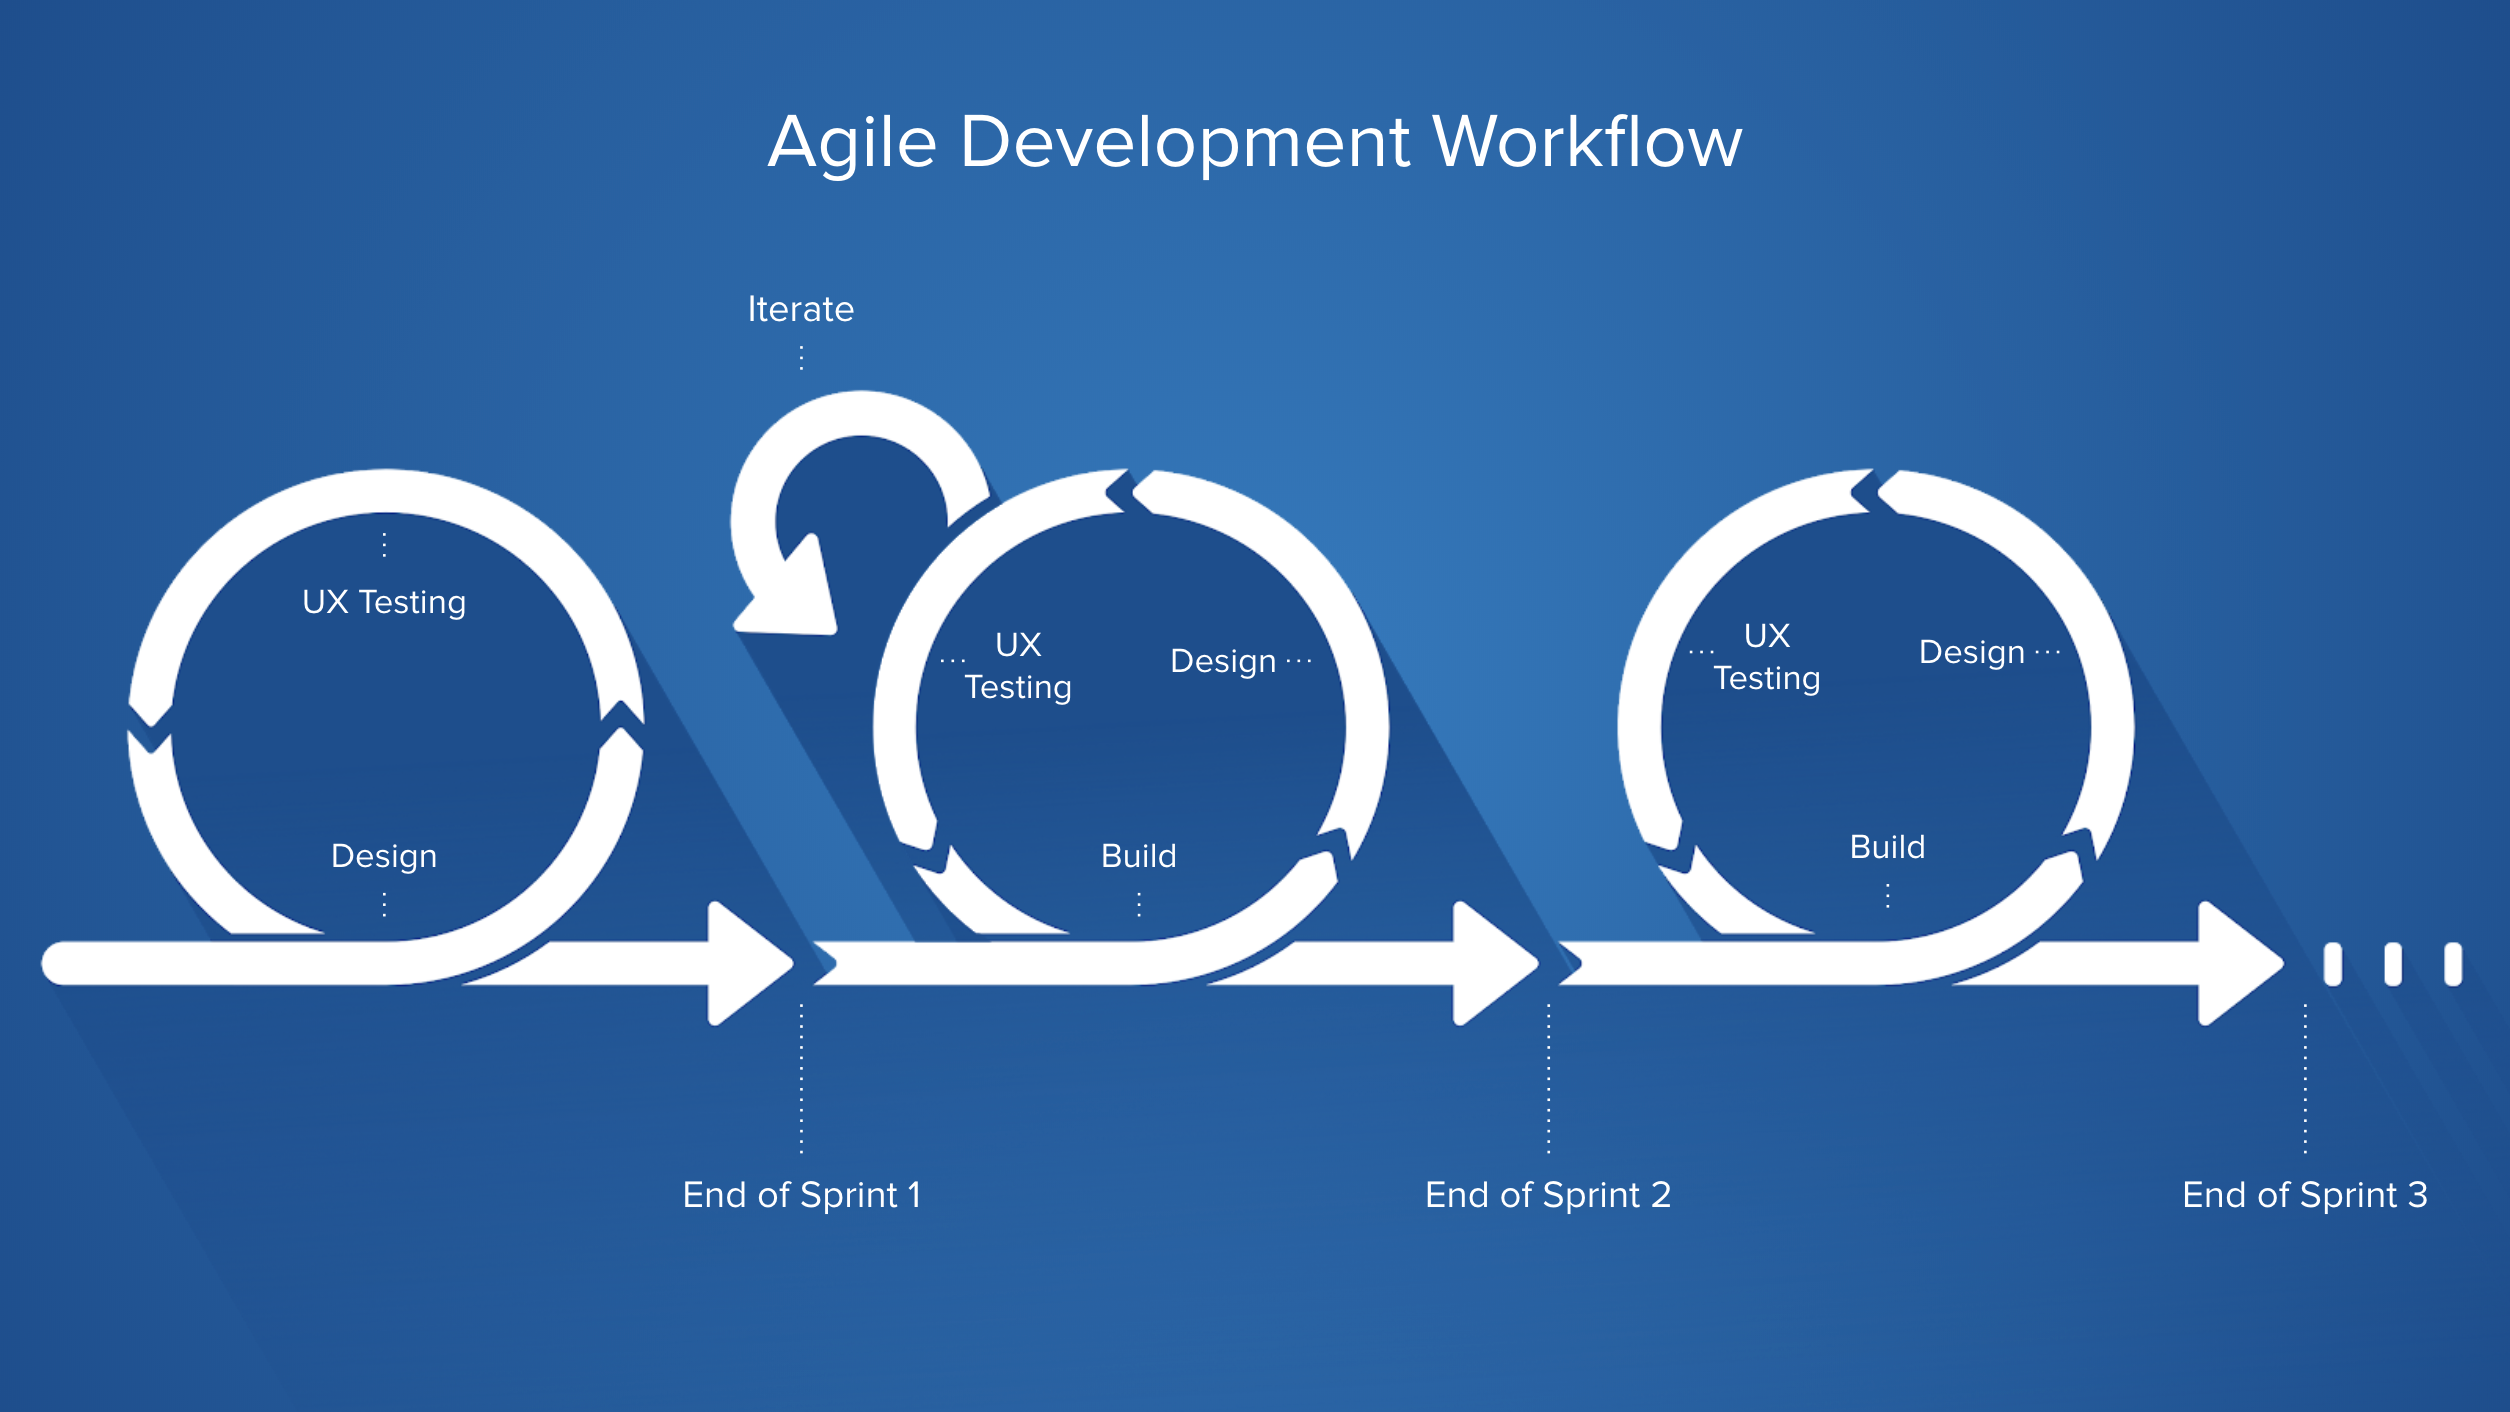 Agile Development Workflow